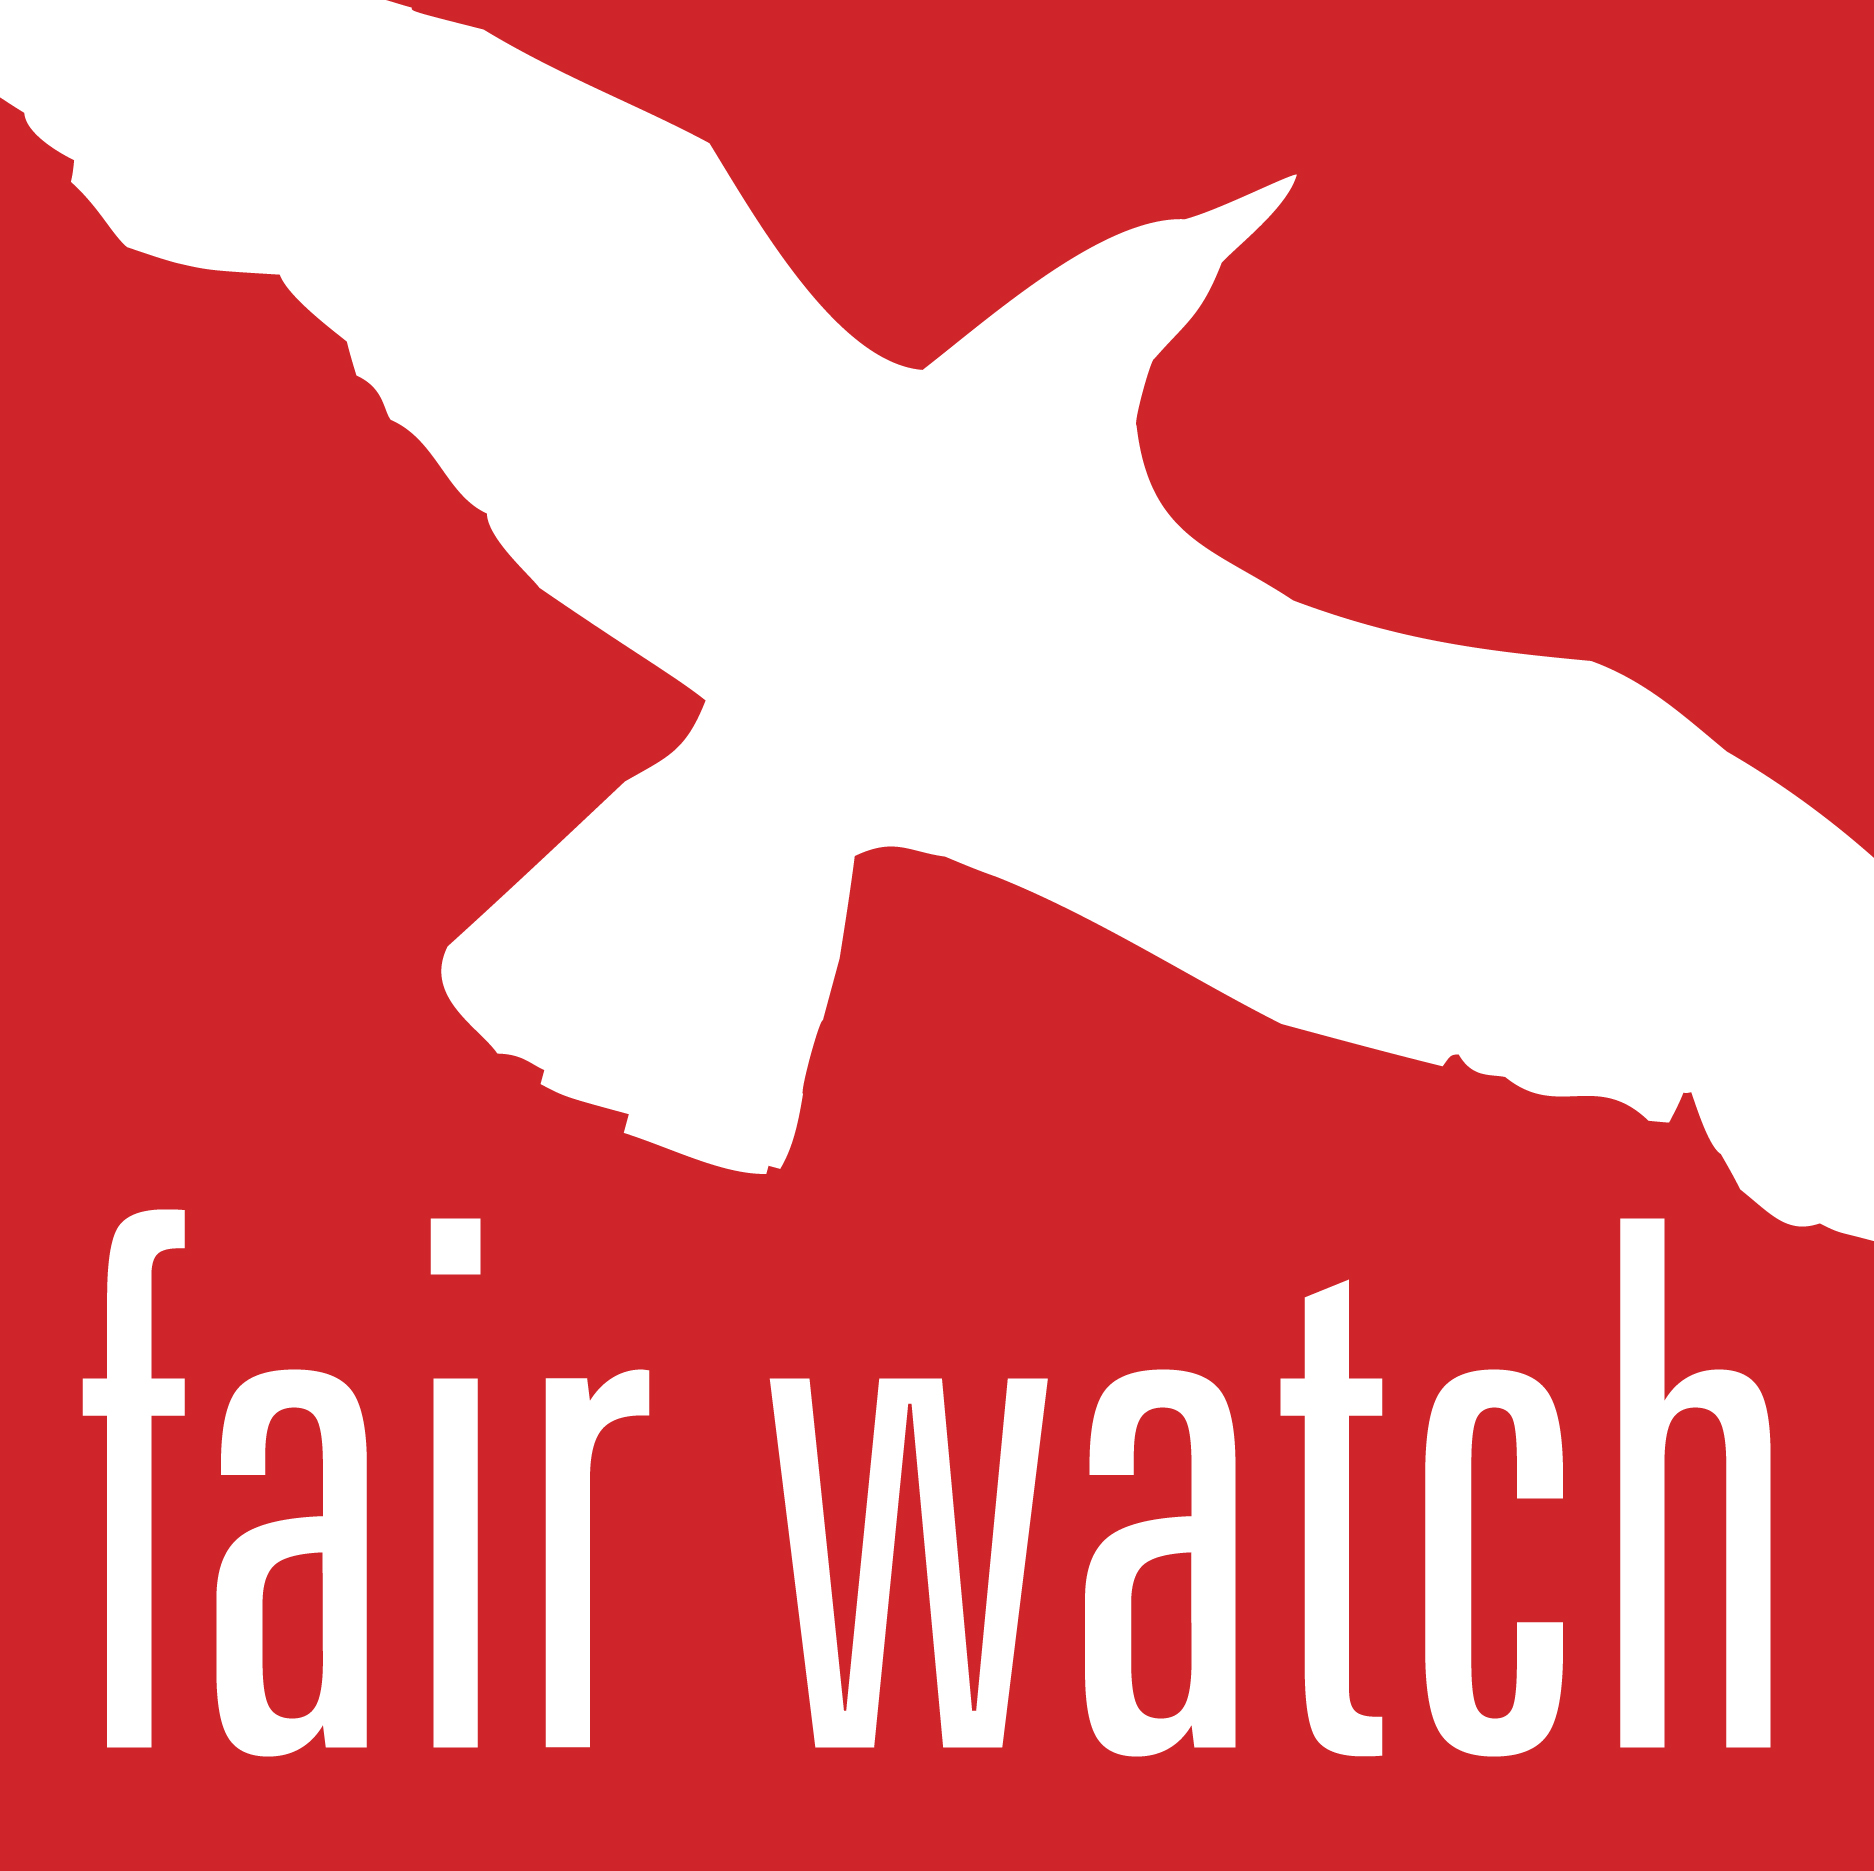 Fair Watch